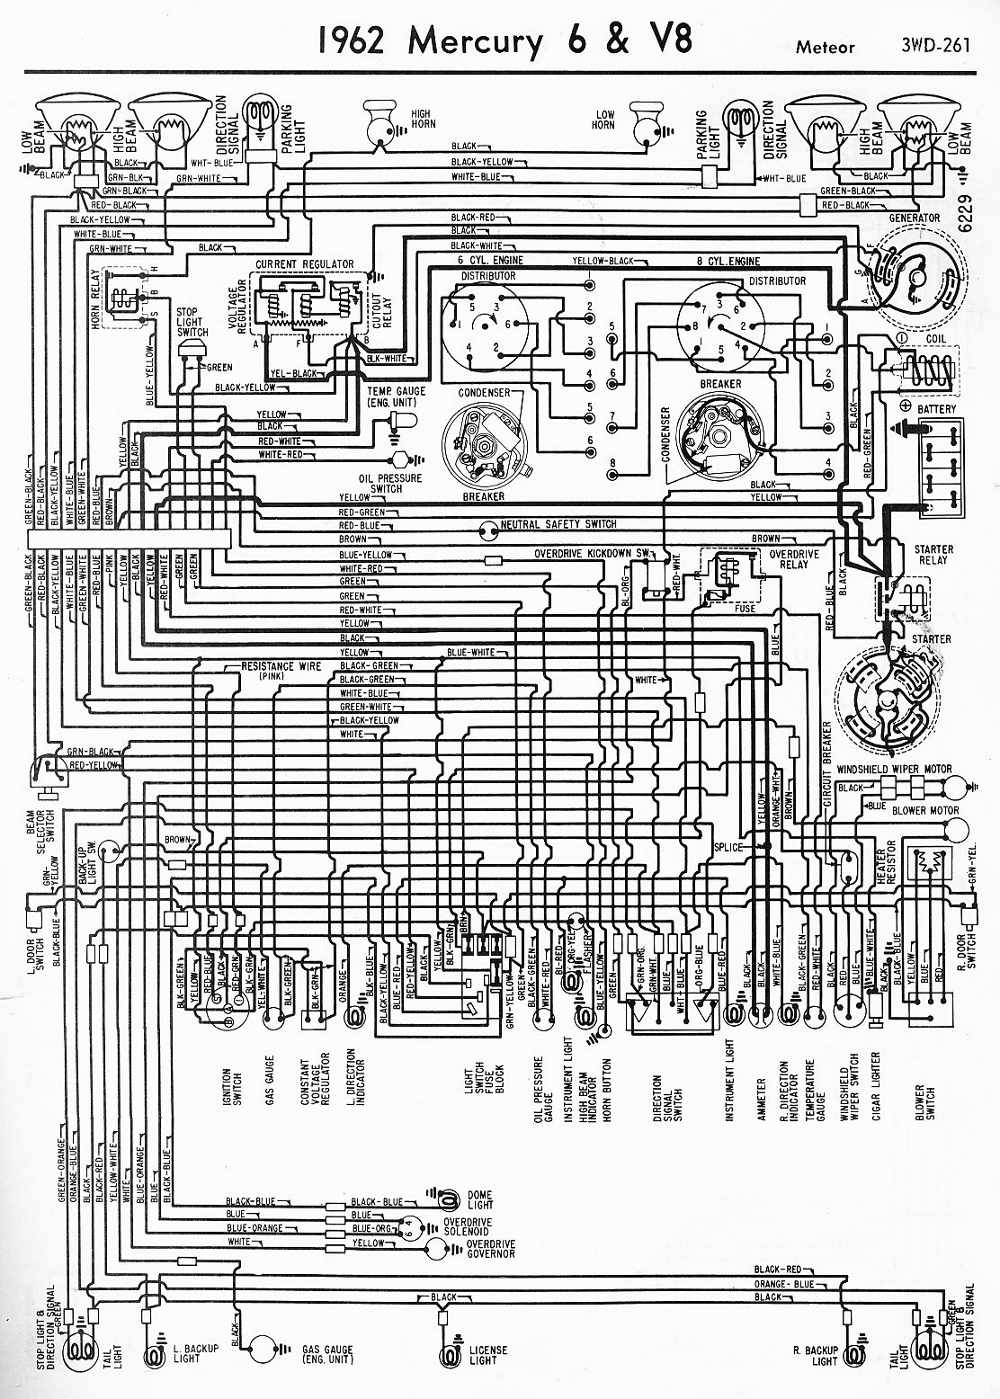 wiring diagrams of 1962 mercury 6 and v8 meteor?t=1508498122 mercury car manuals, wiring diagrams pdf & fault codes mercury milan wiring diagram at n-0.co